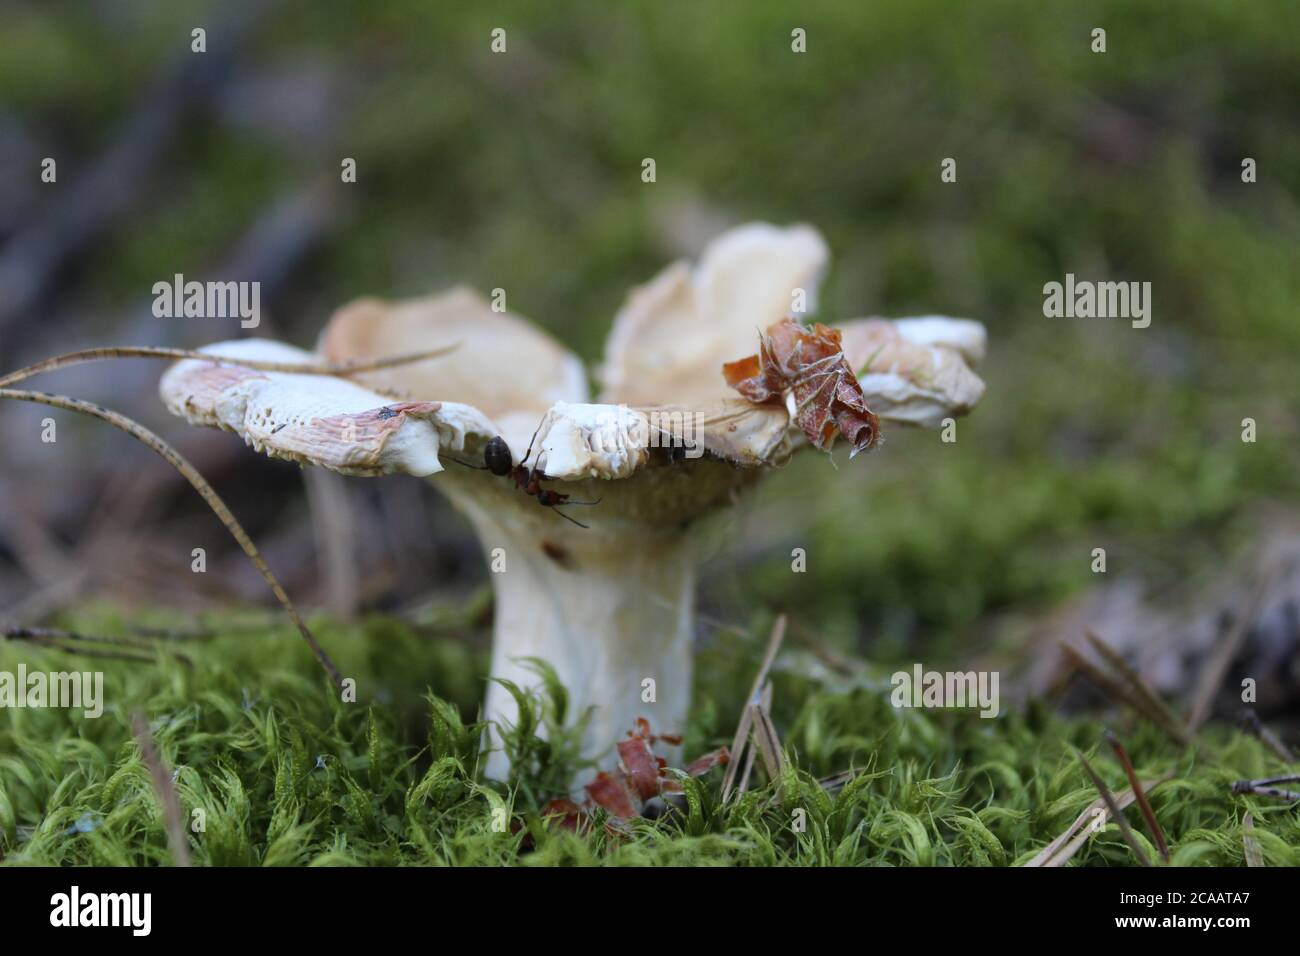 the brown cap of the mushroom is visible from the grass behind a stick a club mushrooms grow in the woods collecting mushrooms rest a mushroom of whit Stock Photo